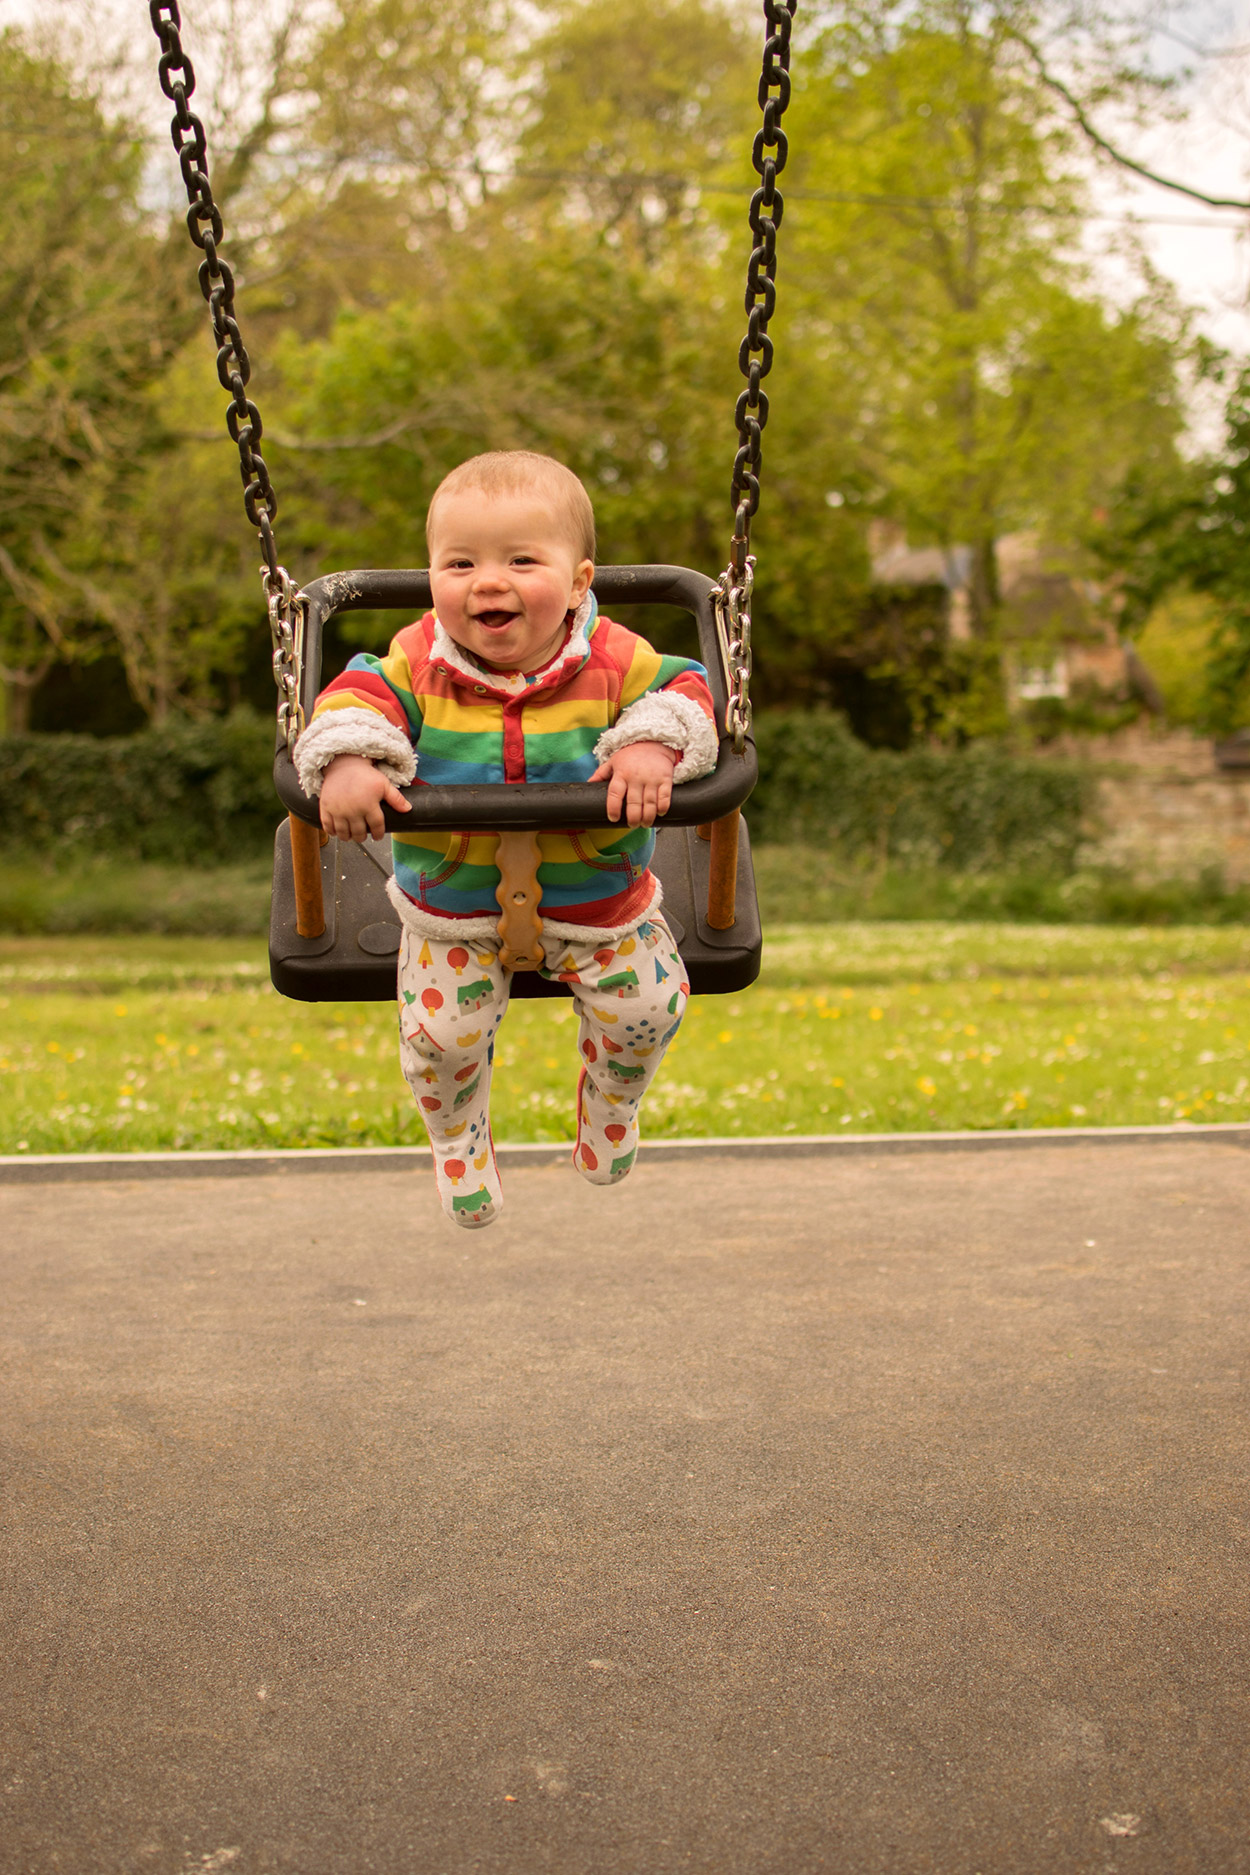 Baby Jesse Blue at 9 months old - Baby boy wearing rainbow frugi snuggle fleece and Little Green Radicals houses sleepsuit smiling whilst on the swings at the park